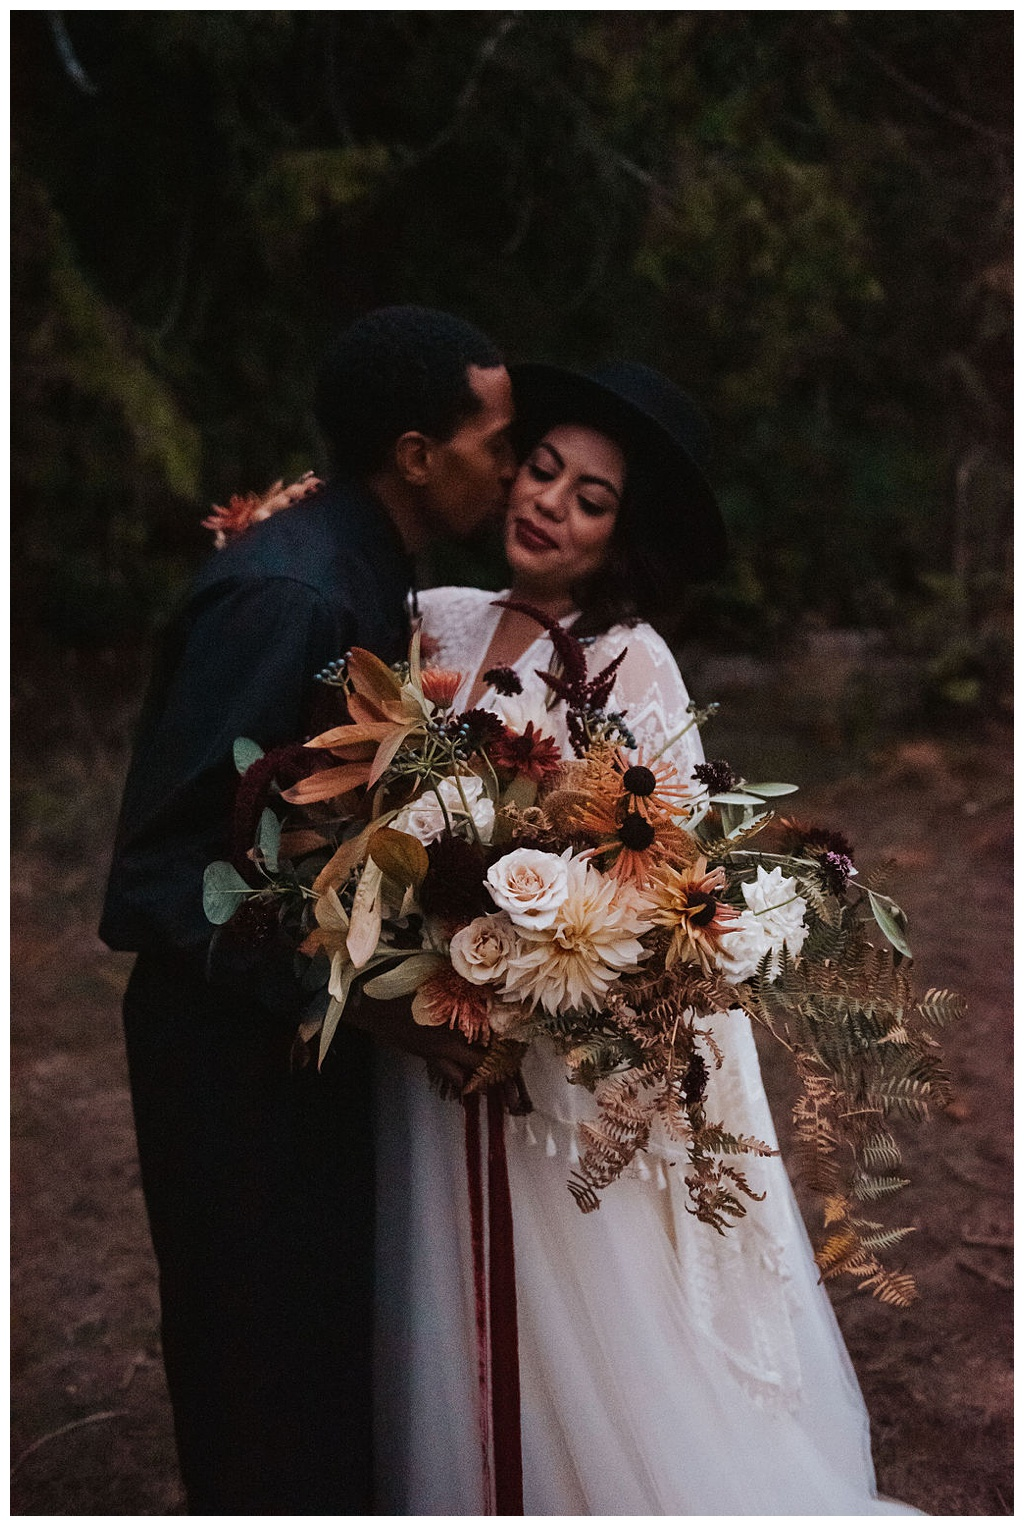 A couple in the woods, holding a bridal bouquet